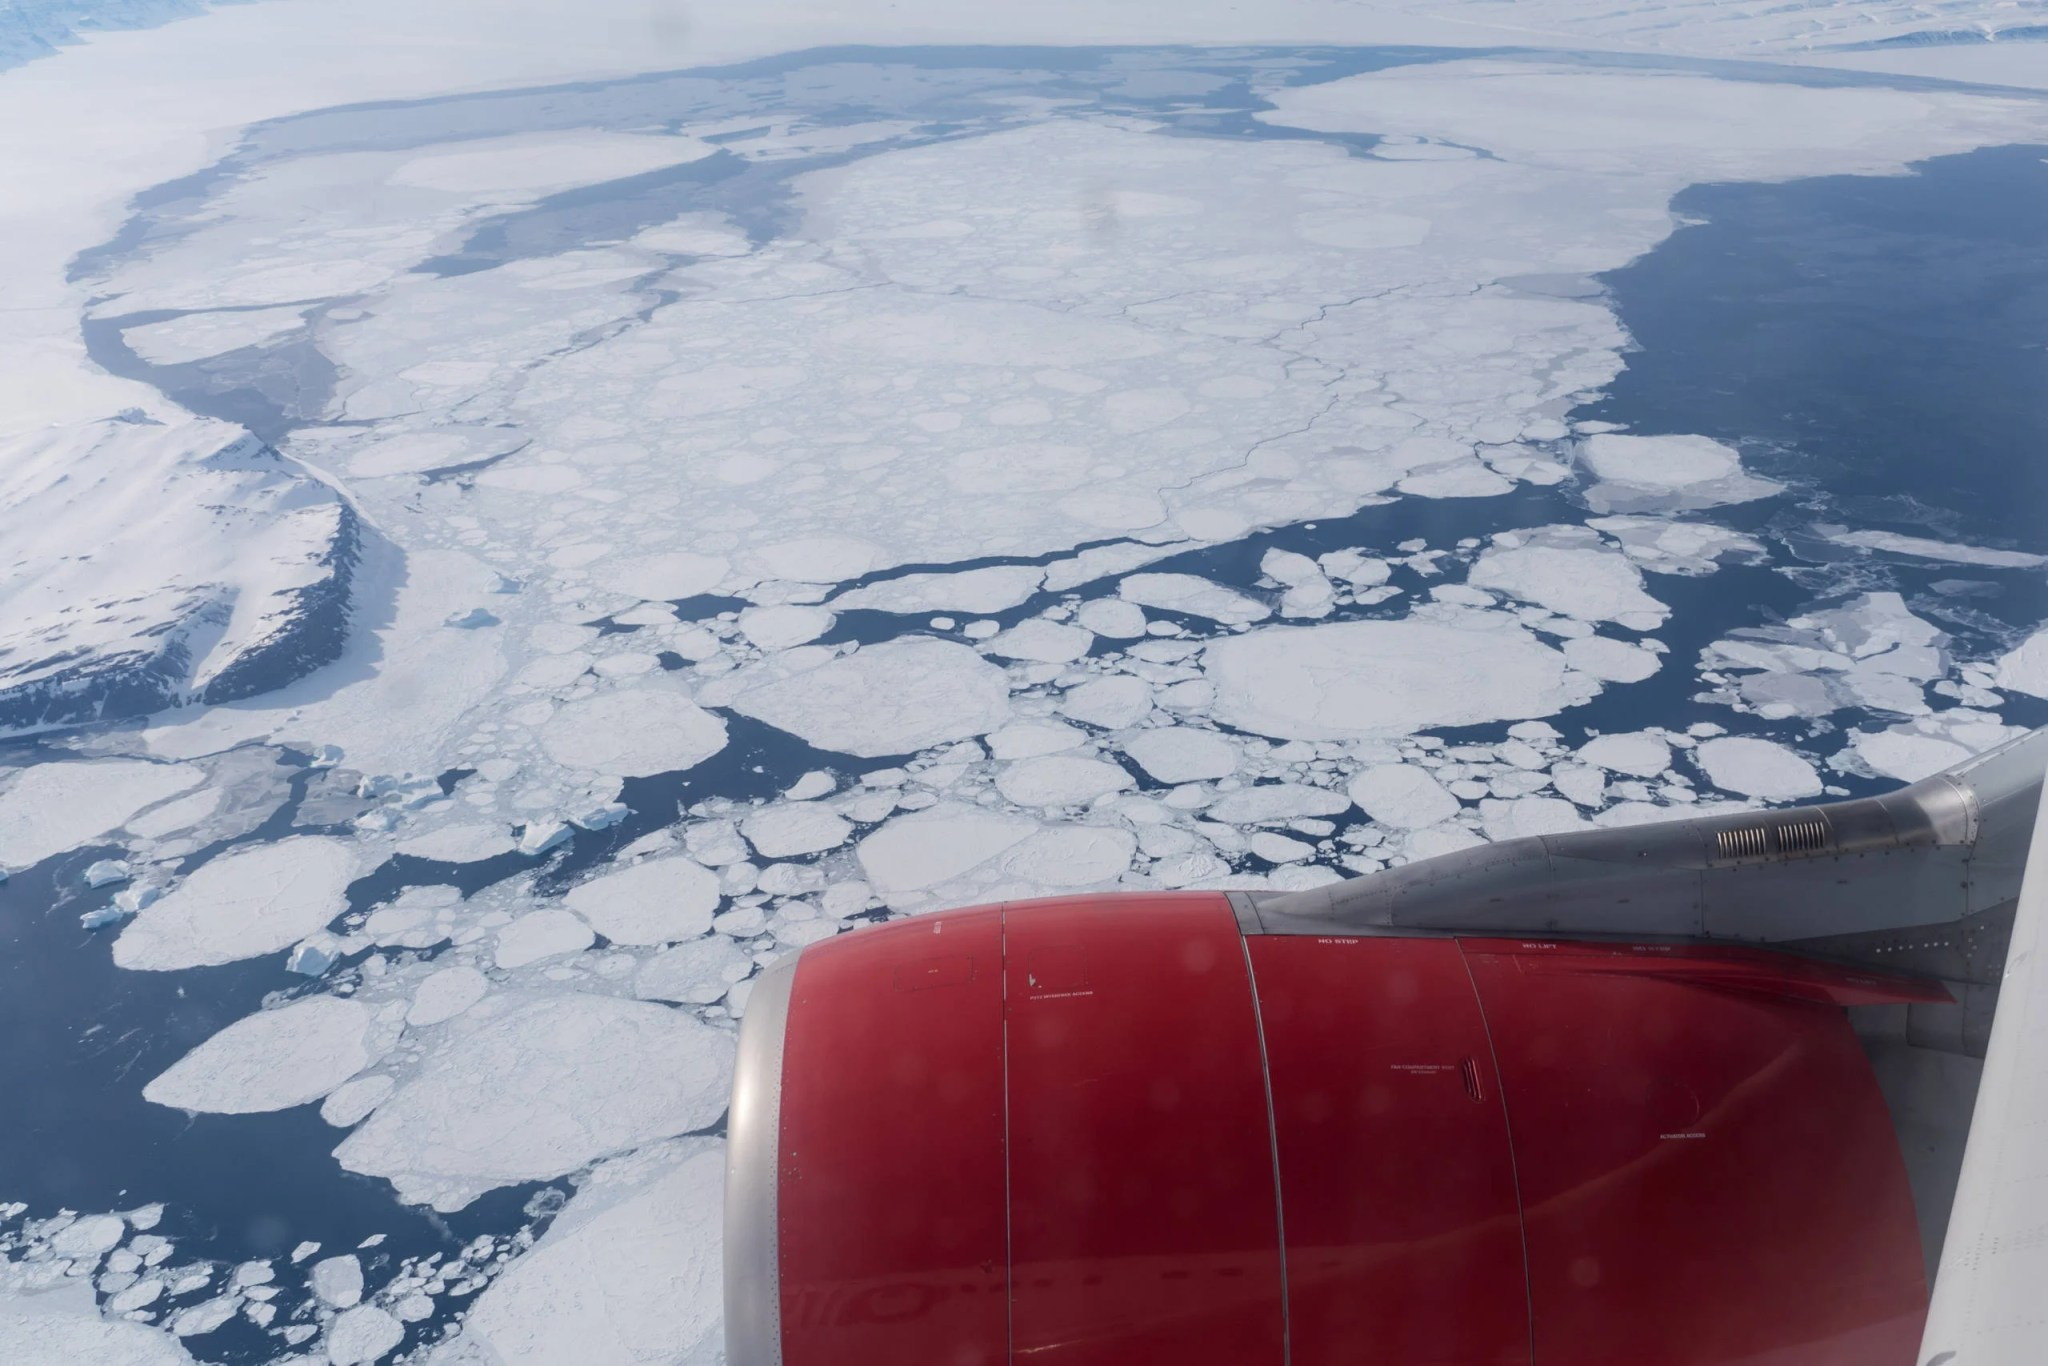 Flying to Santa's home: Why some commercial routes pass over the North Pole